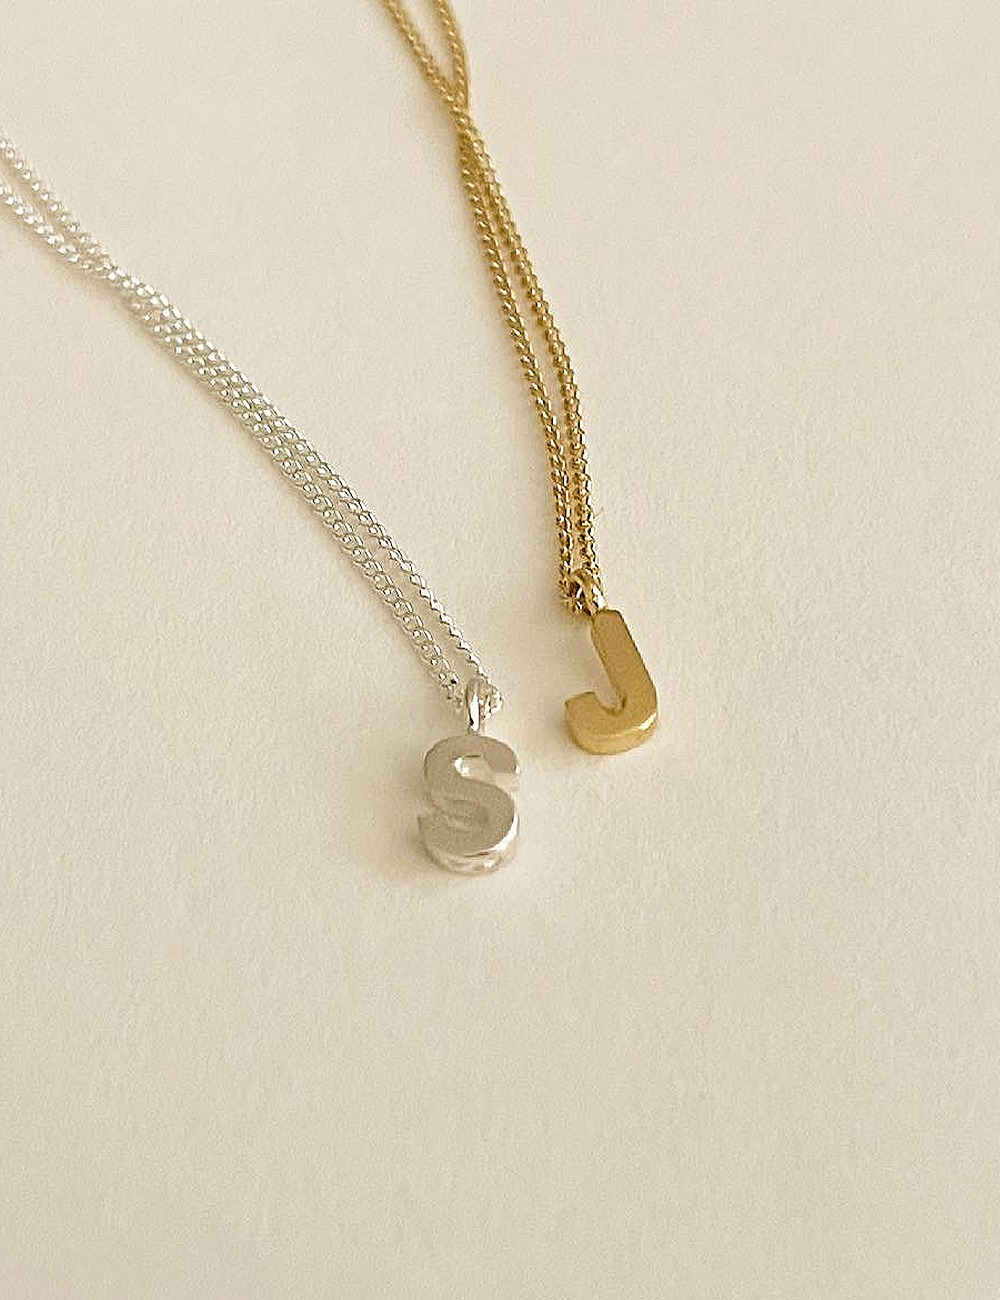 (silver 92.5) Initial necklace